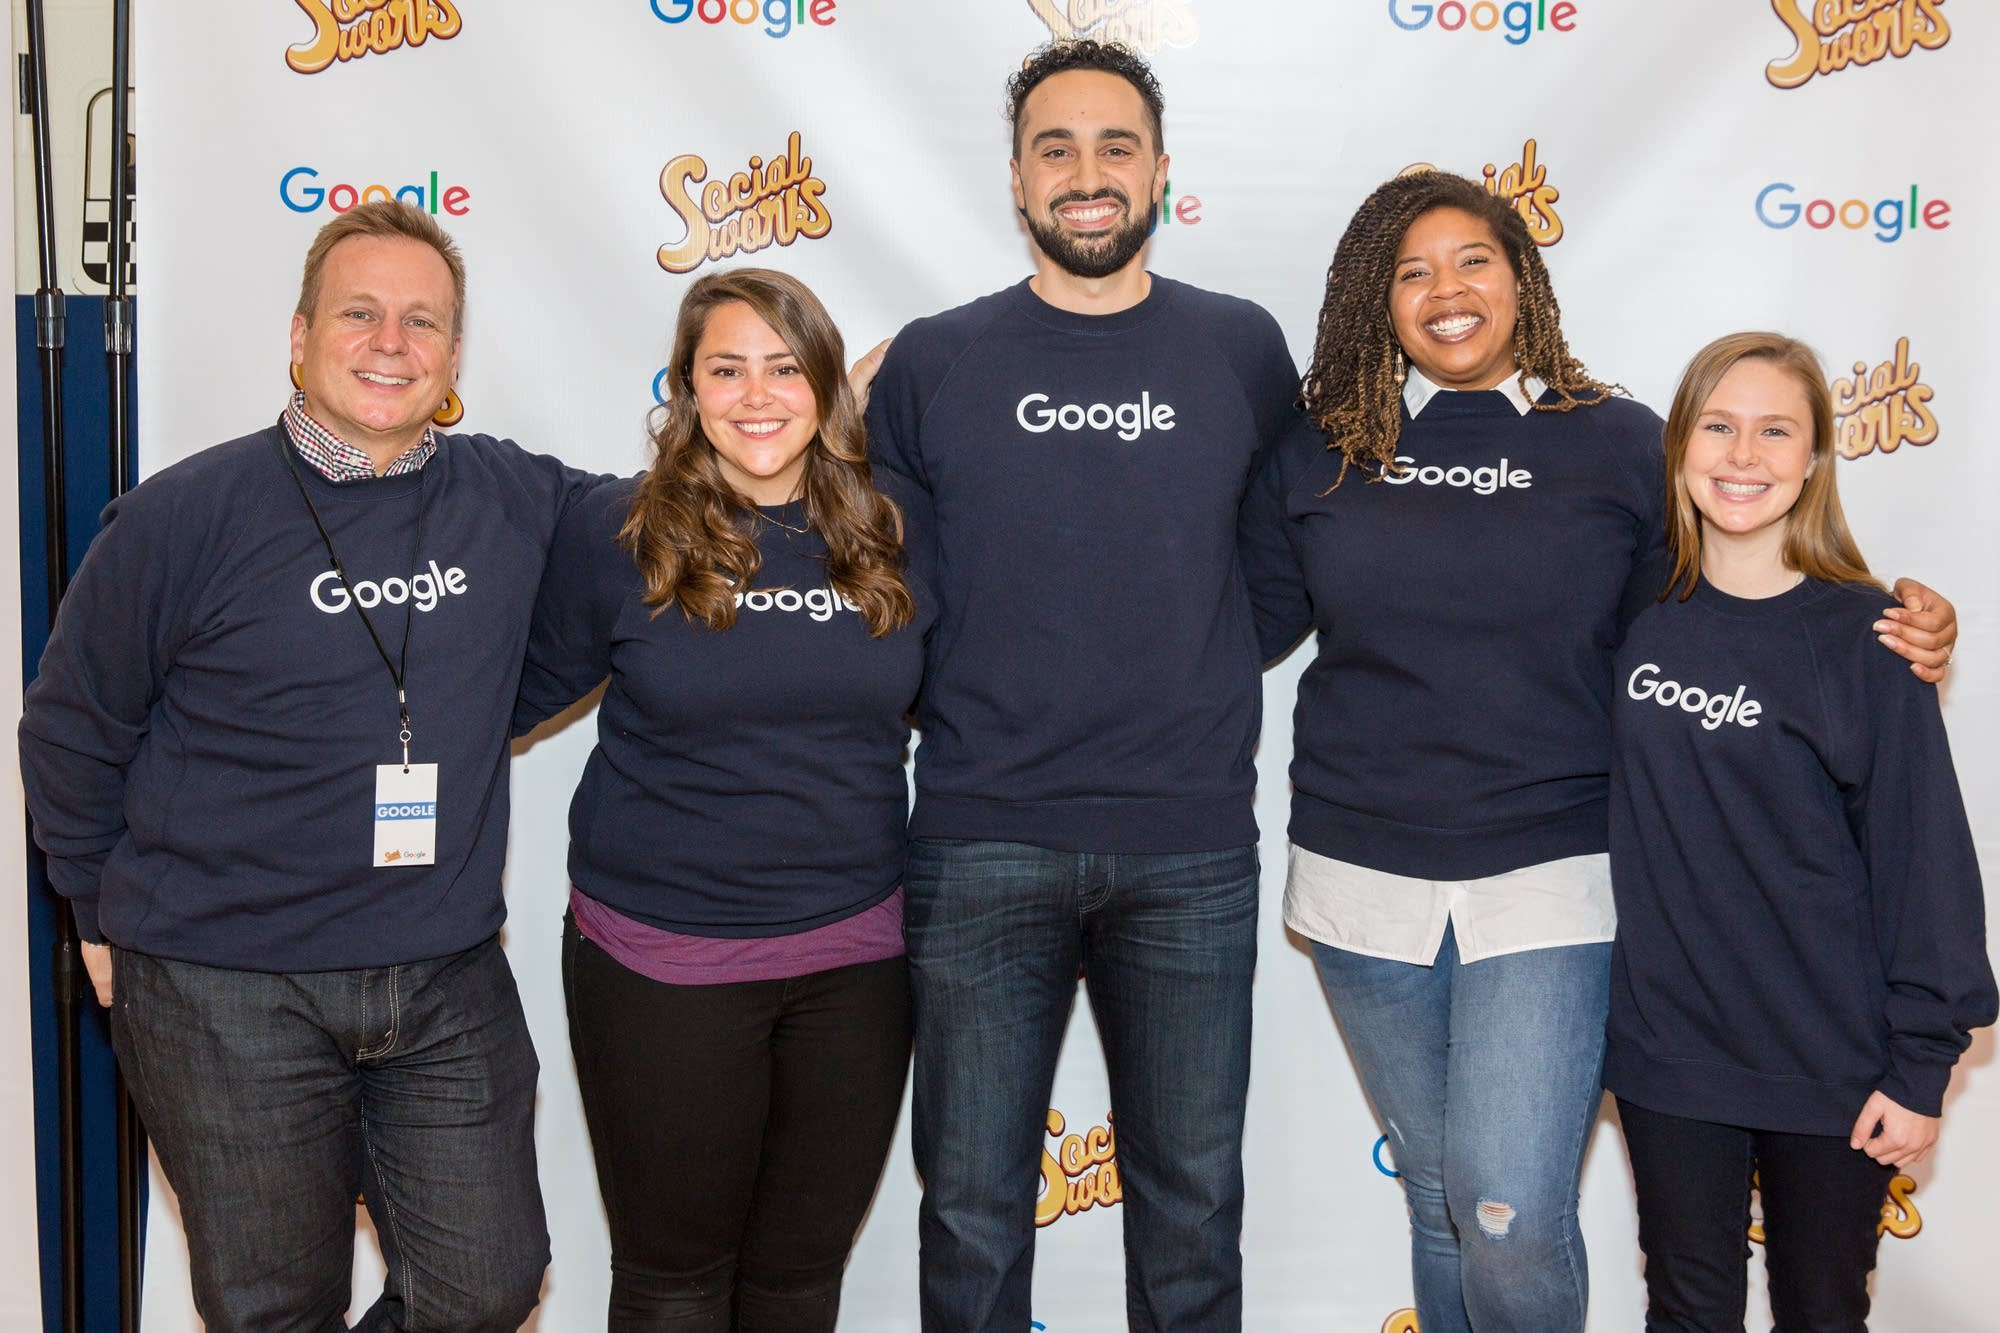 Google team assisting computer education in Chicago schools